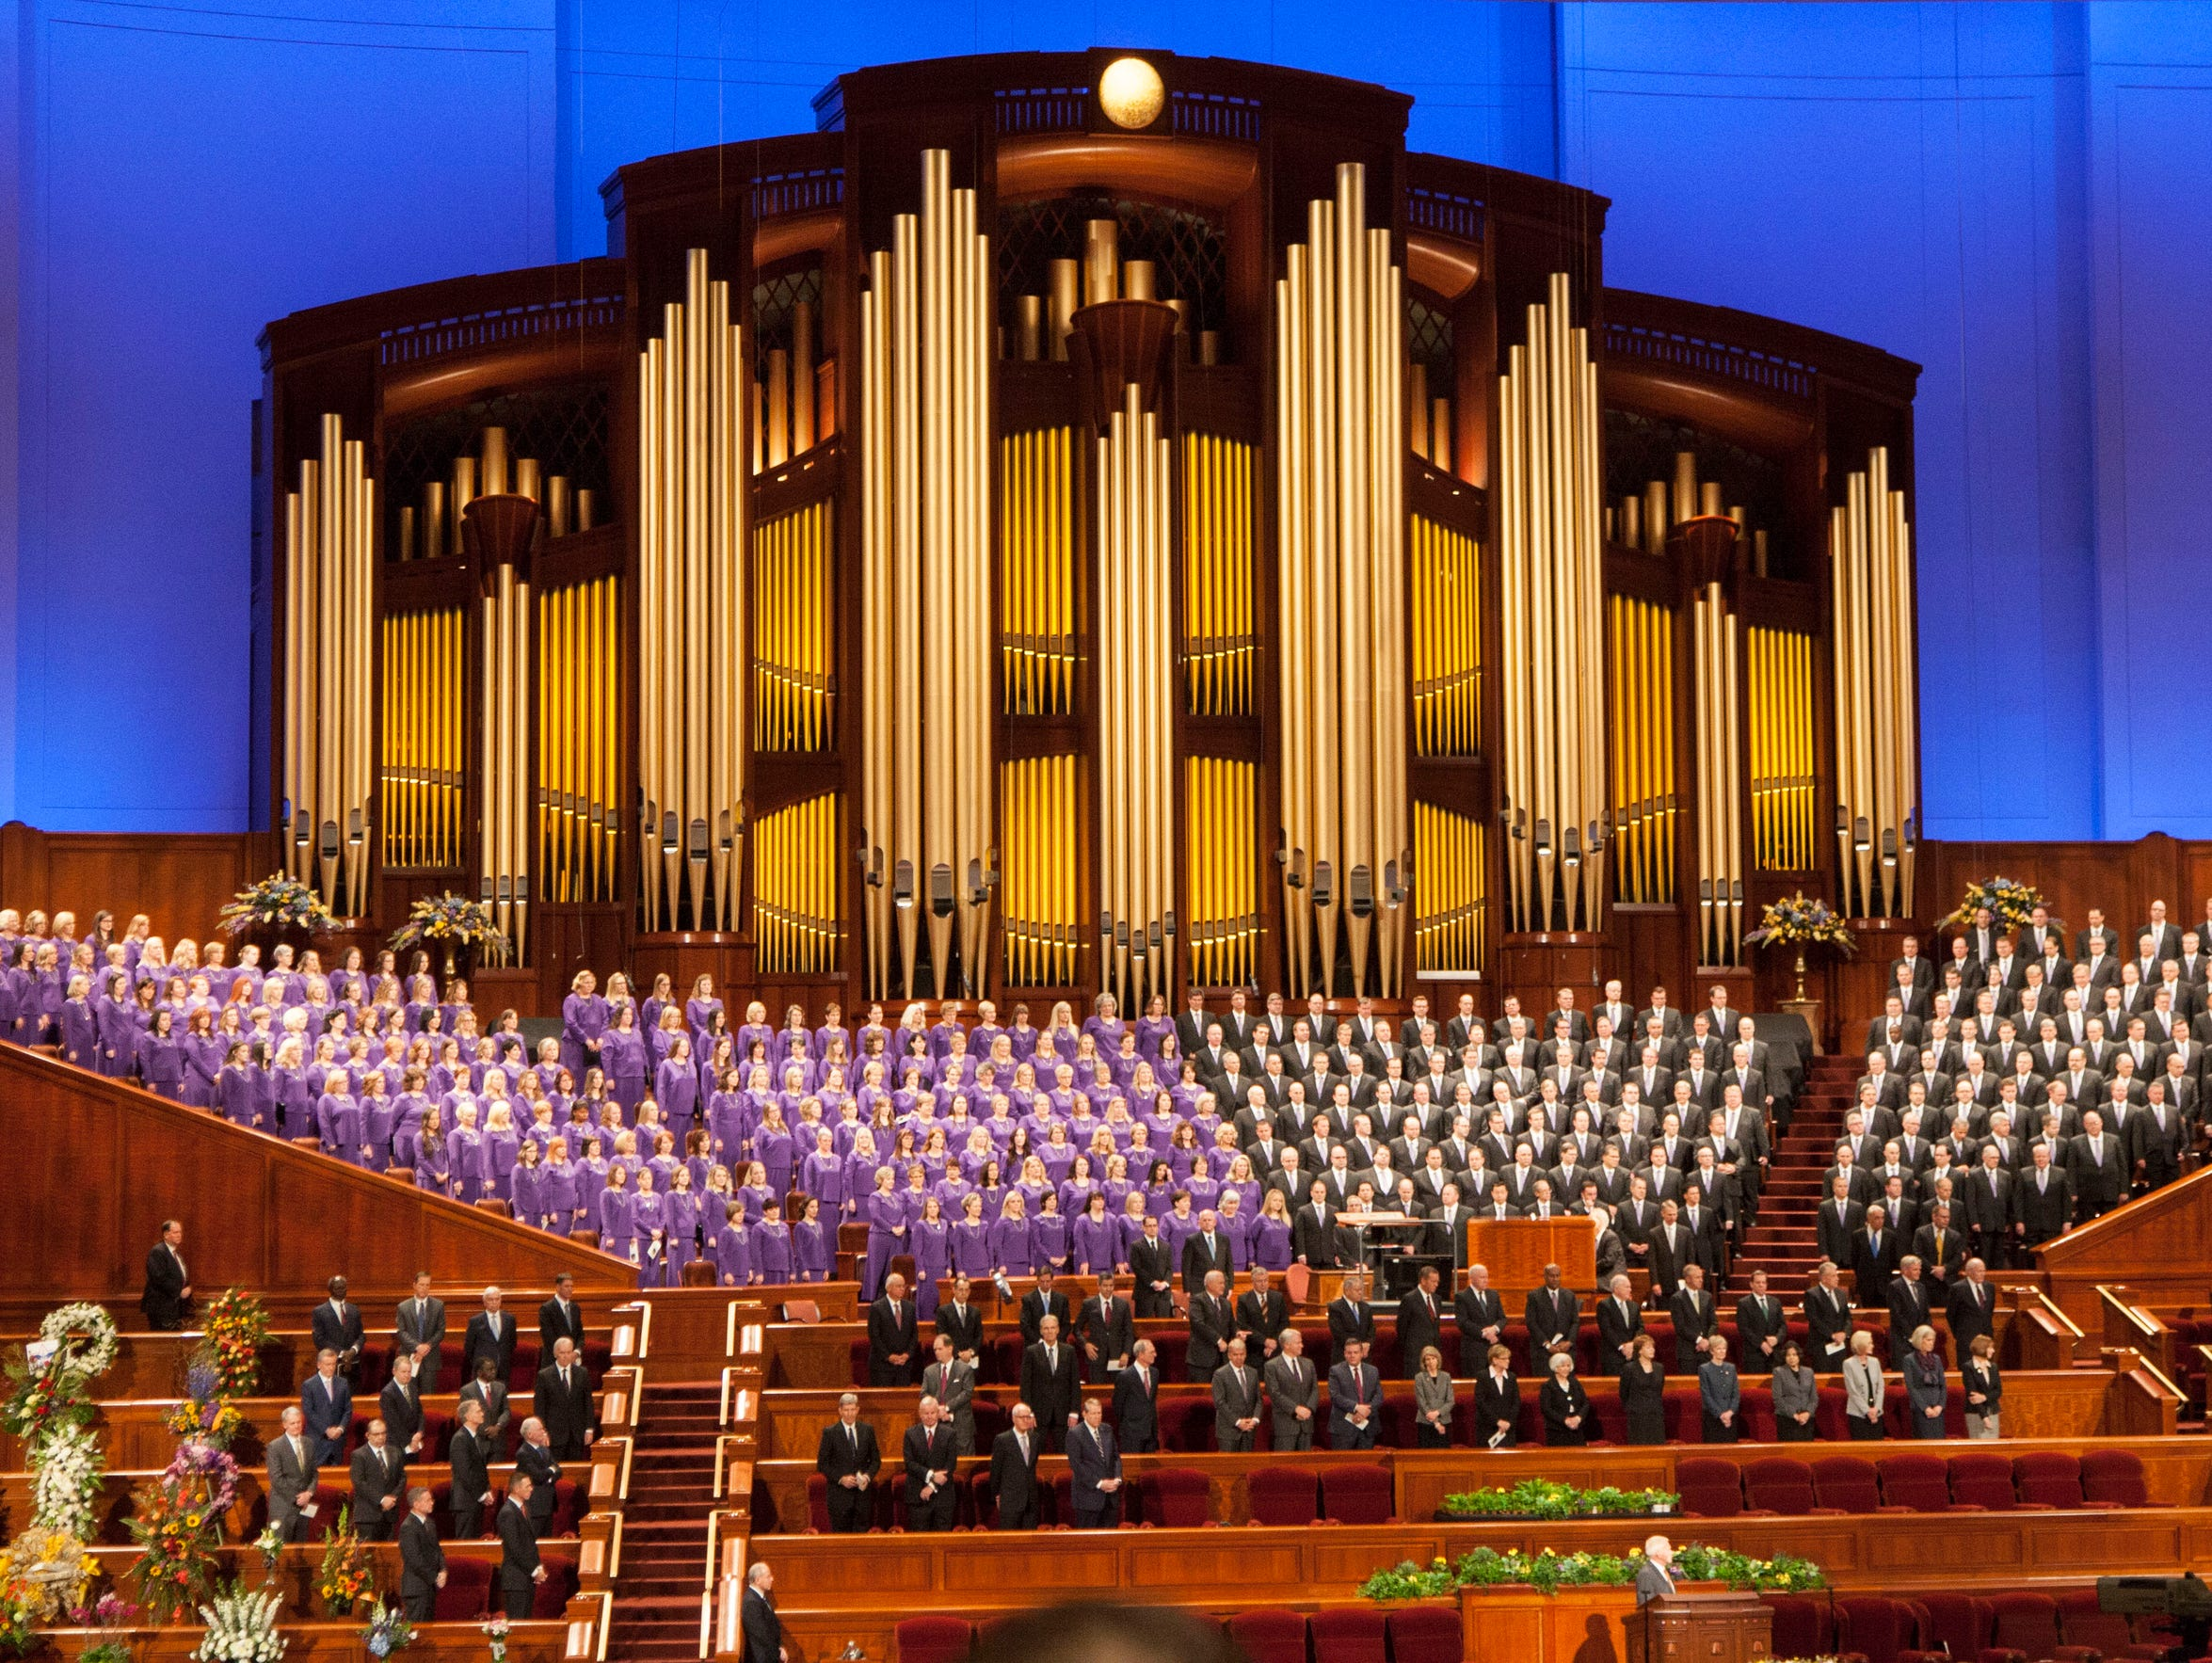 The LDS Conference Center in Salt Lake City is where Mormons gather twice a year to hear teachings from LDS leaders.